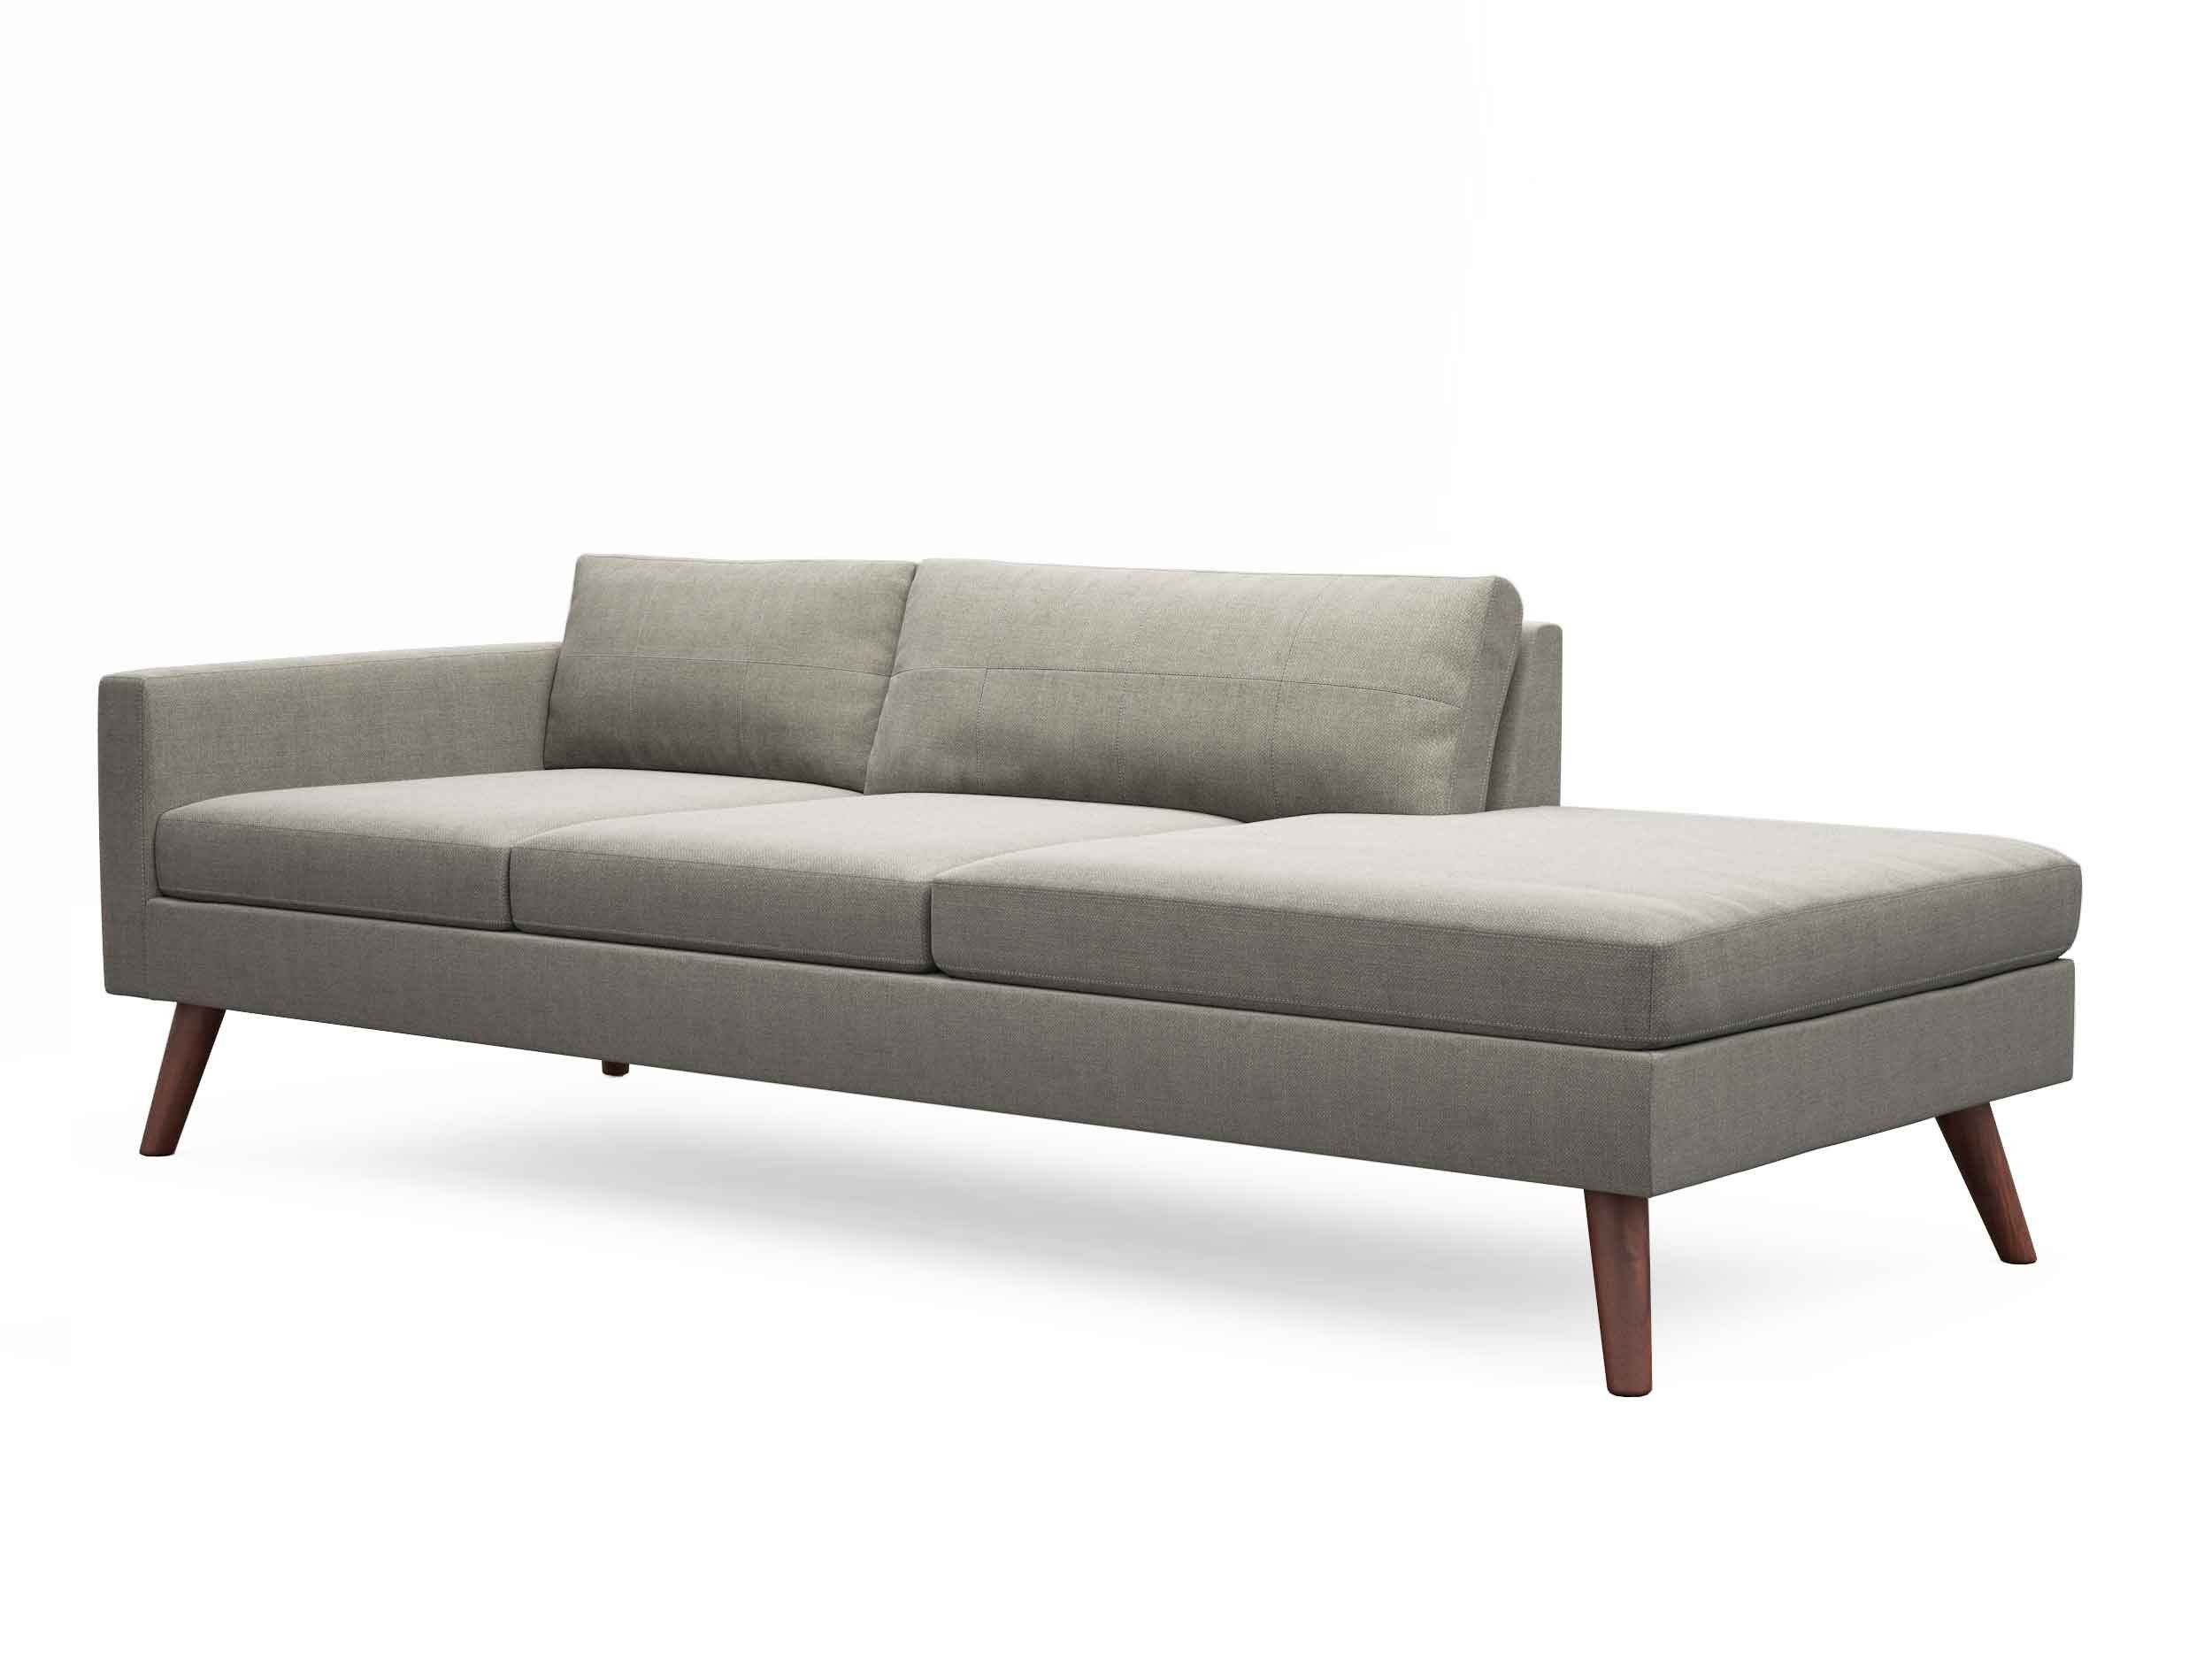 Furniture minimalist left arm chaise in white sofa for Chaise oslo but